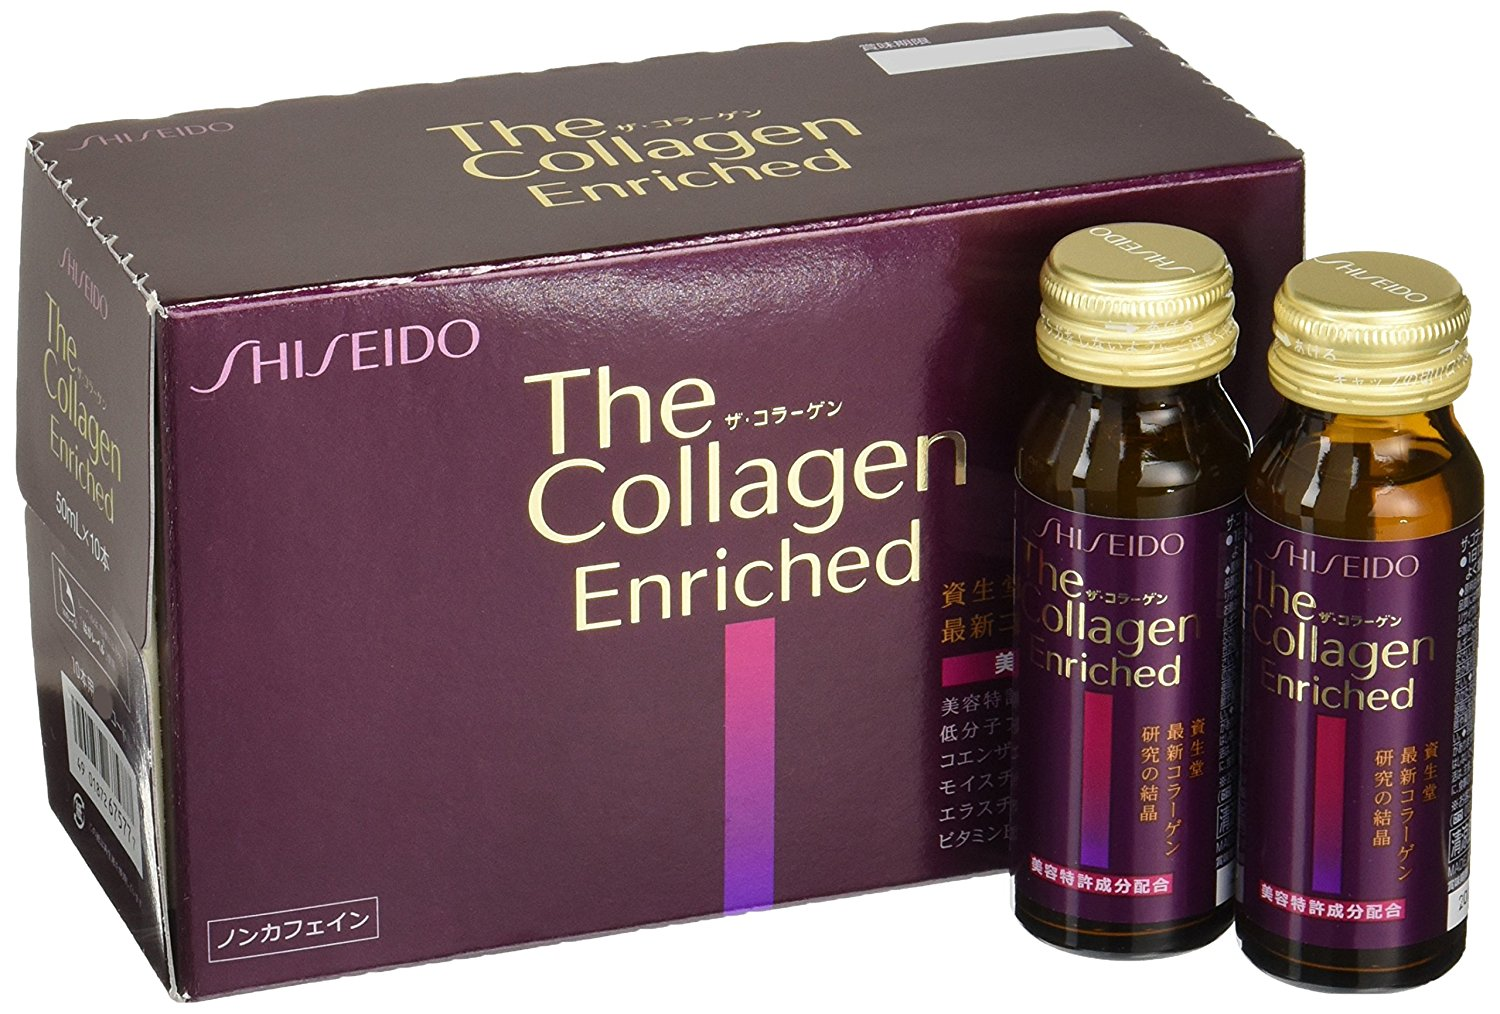 nuoc-uong-cung-cap-collagen-Shiseido-The-Collagen-Enriched